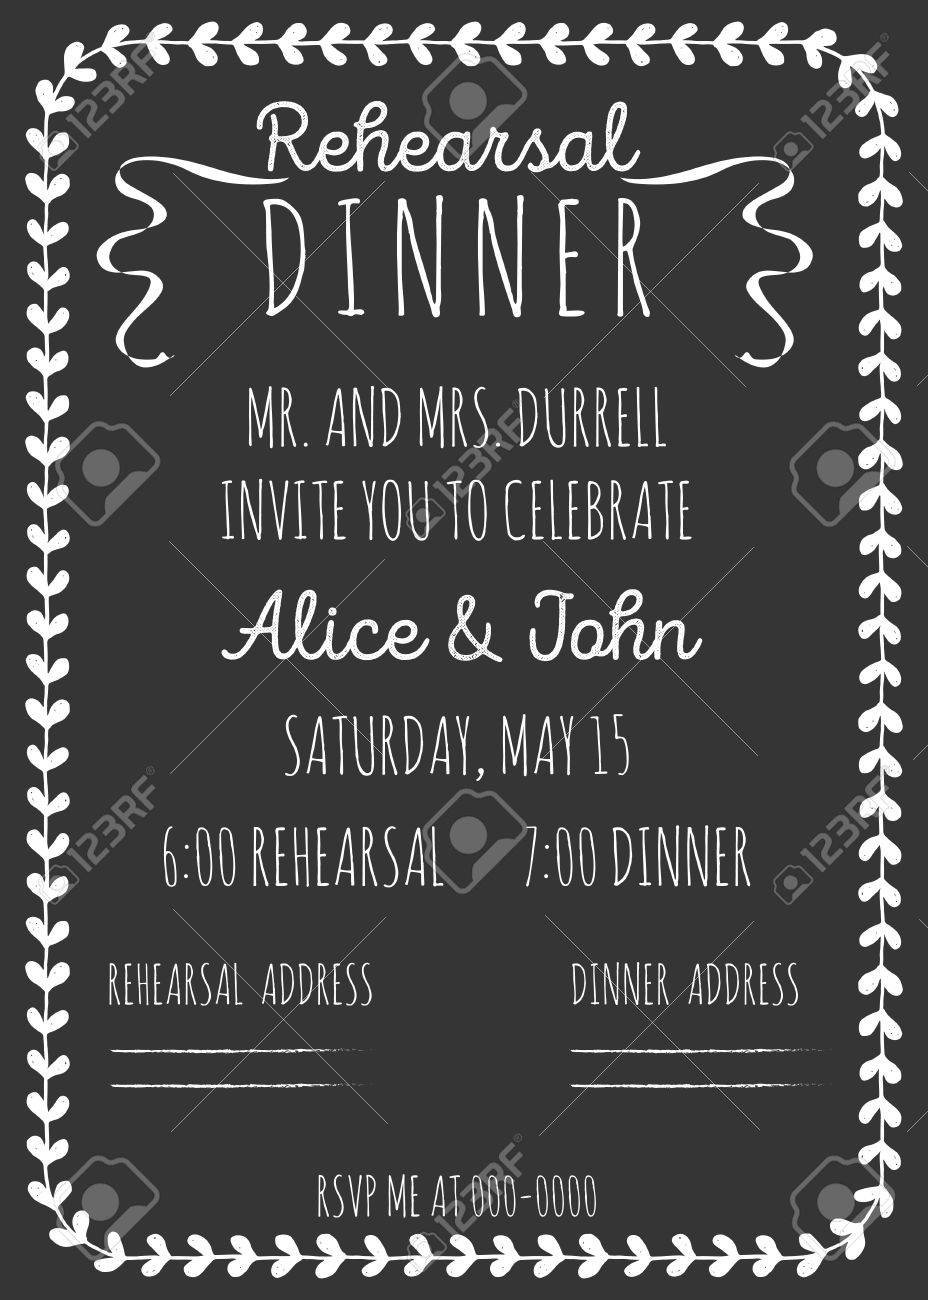 vintage wedding invitation rehearsal dinner invitation template